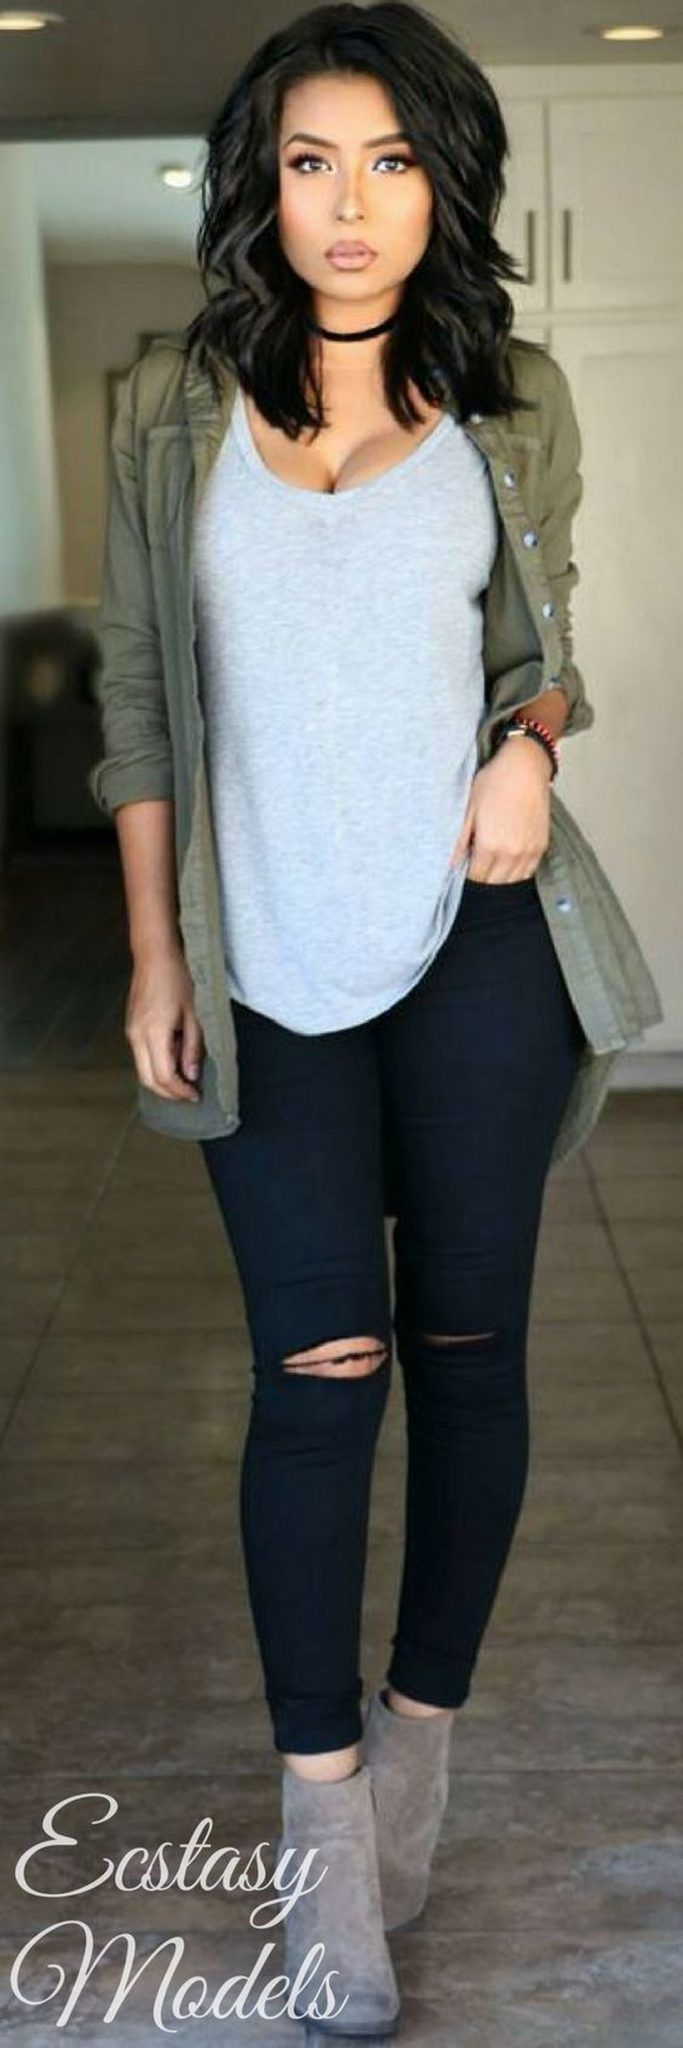 90 Wonderful Casual Fall Fashions Trend Inspirations 2017 https://fasbest.com/90-wonderful-casual-fall-fashions-trend-inspirations-2017/